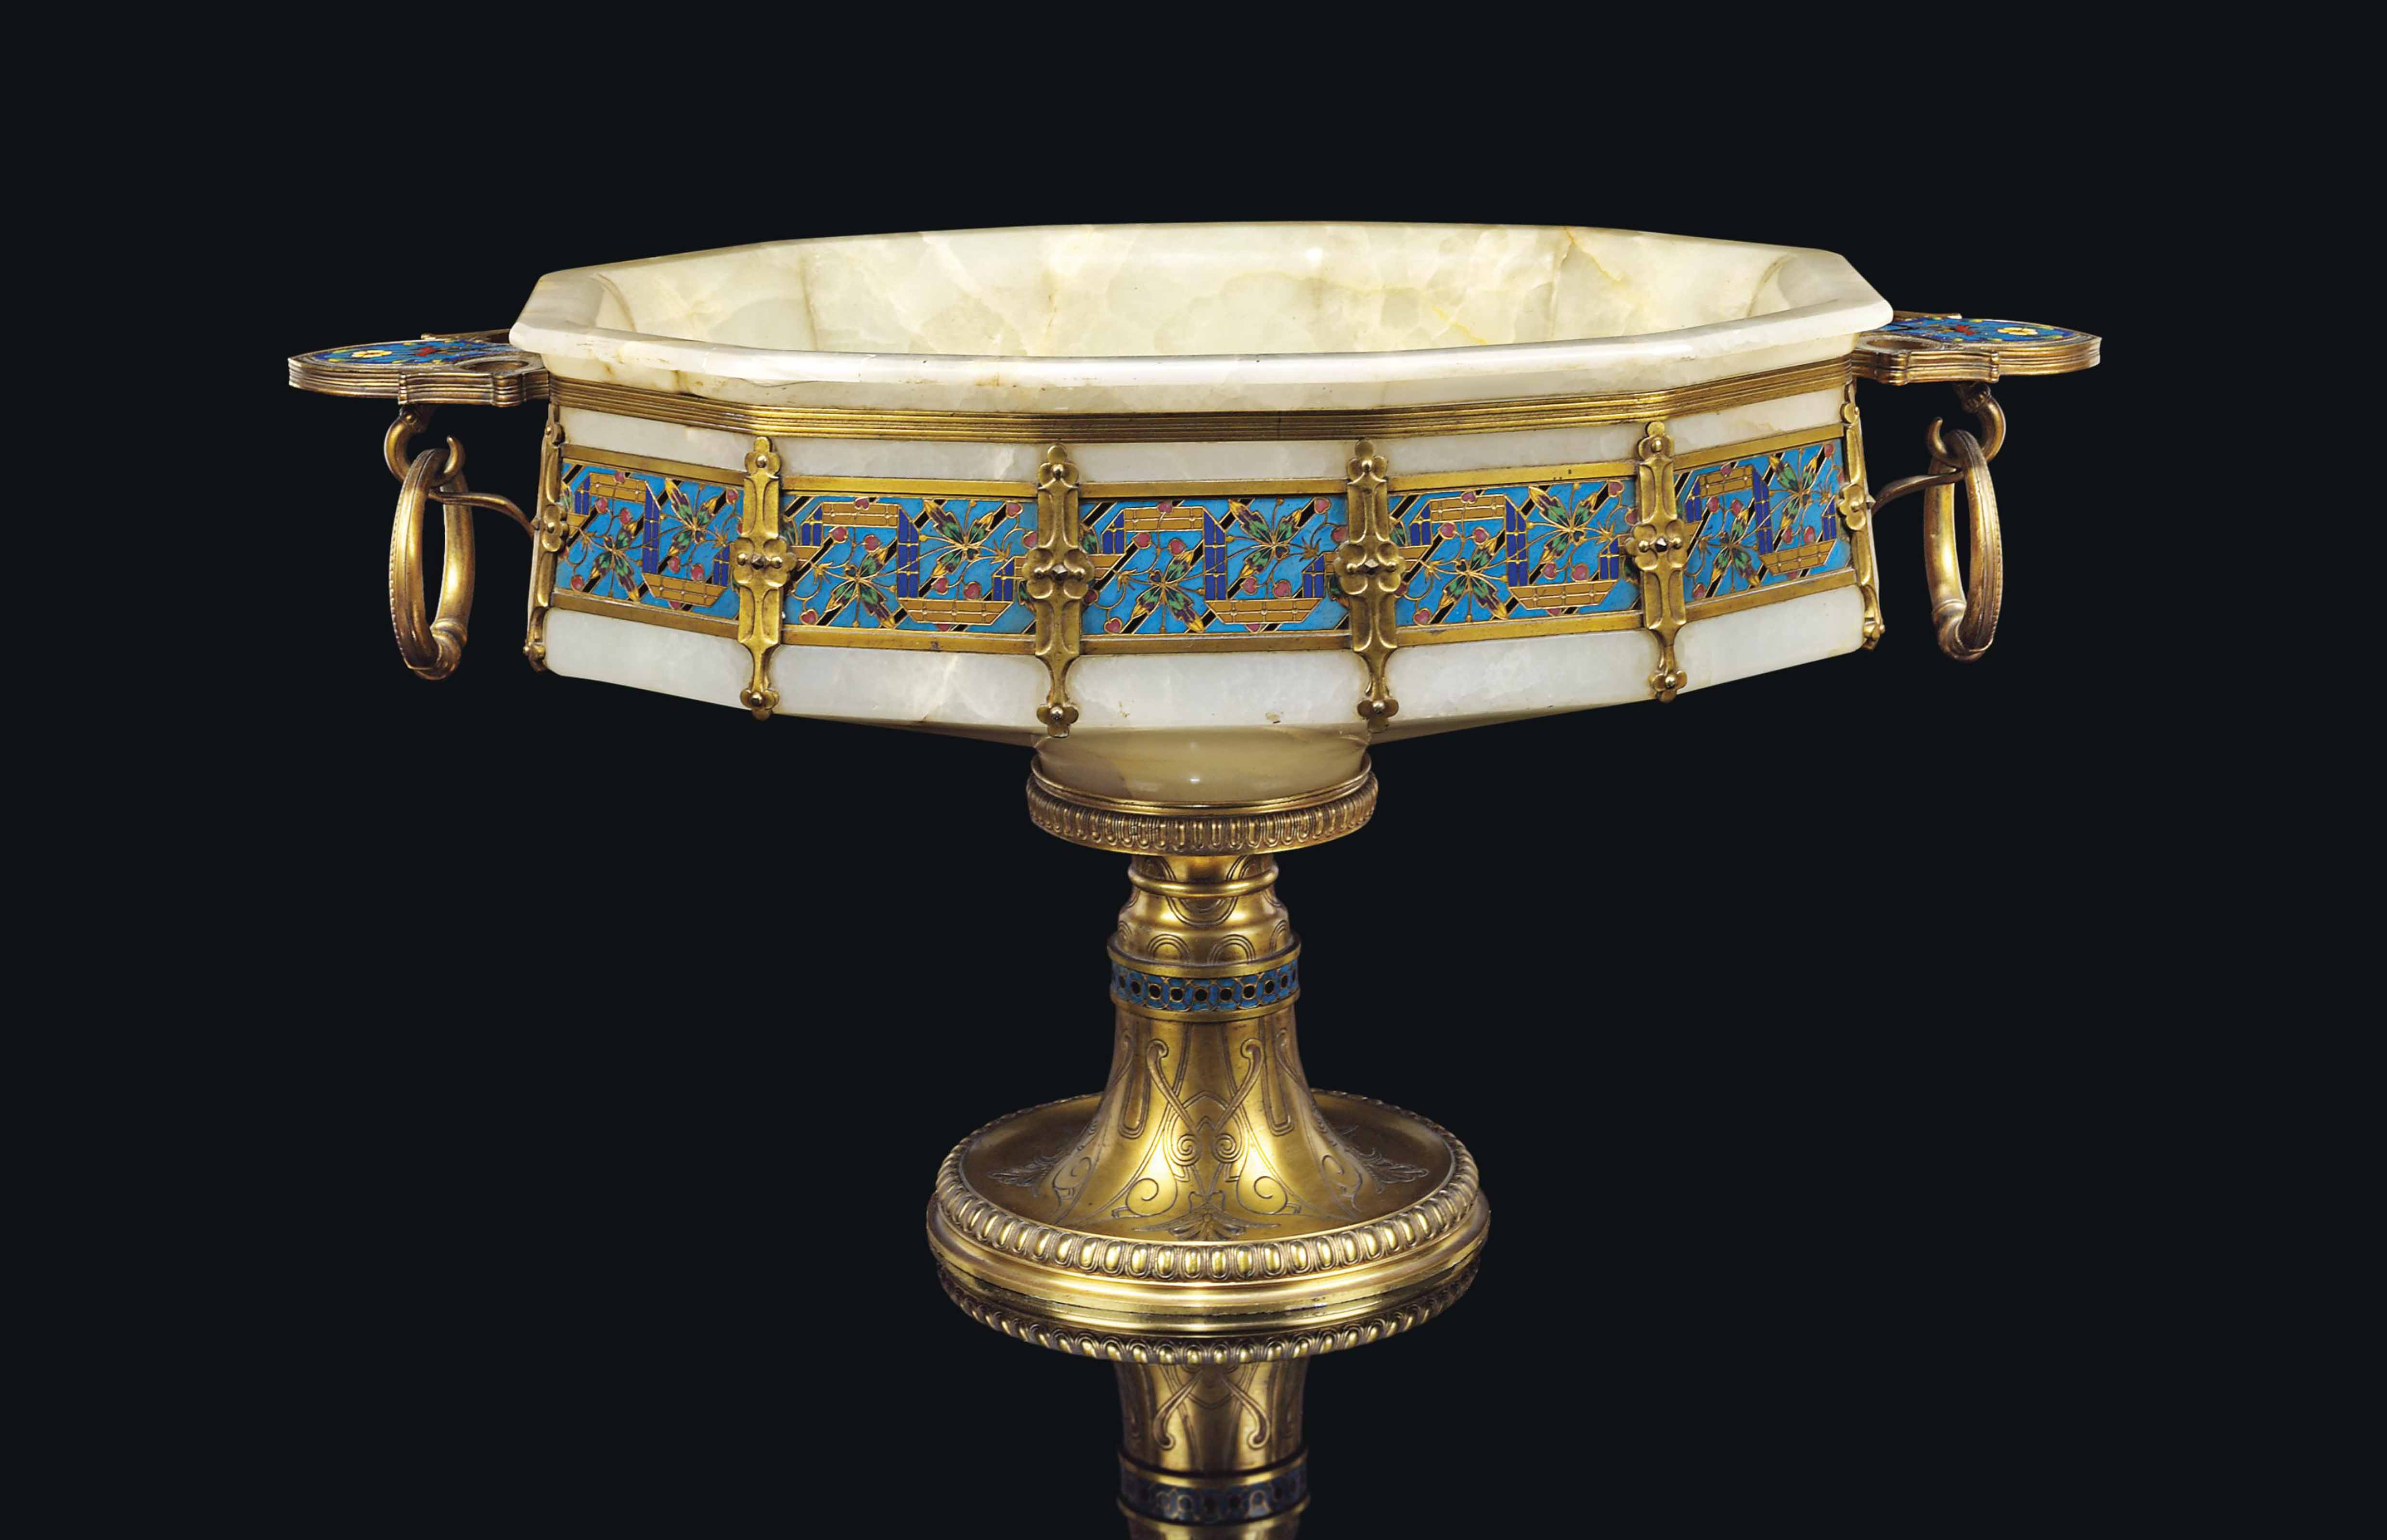 A NAPOLEON III ORMOLU AND CHAMPLEVE-ENAMEL MOUNTED ONYX CENTREPIECE